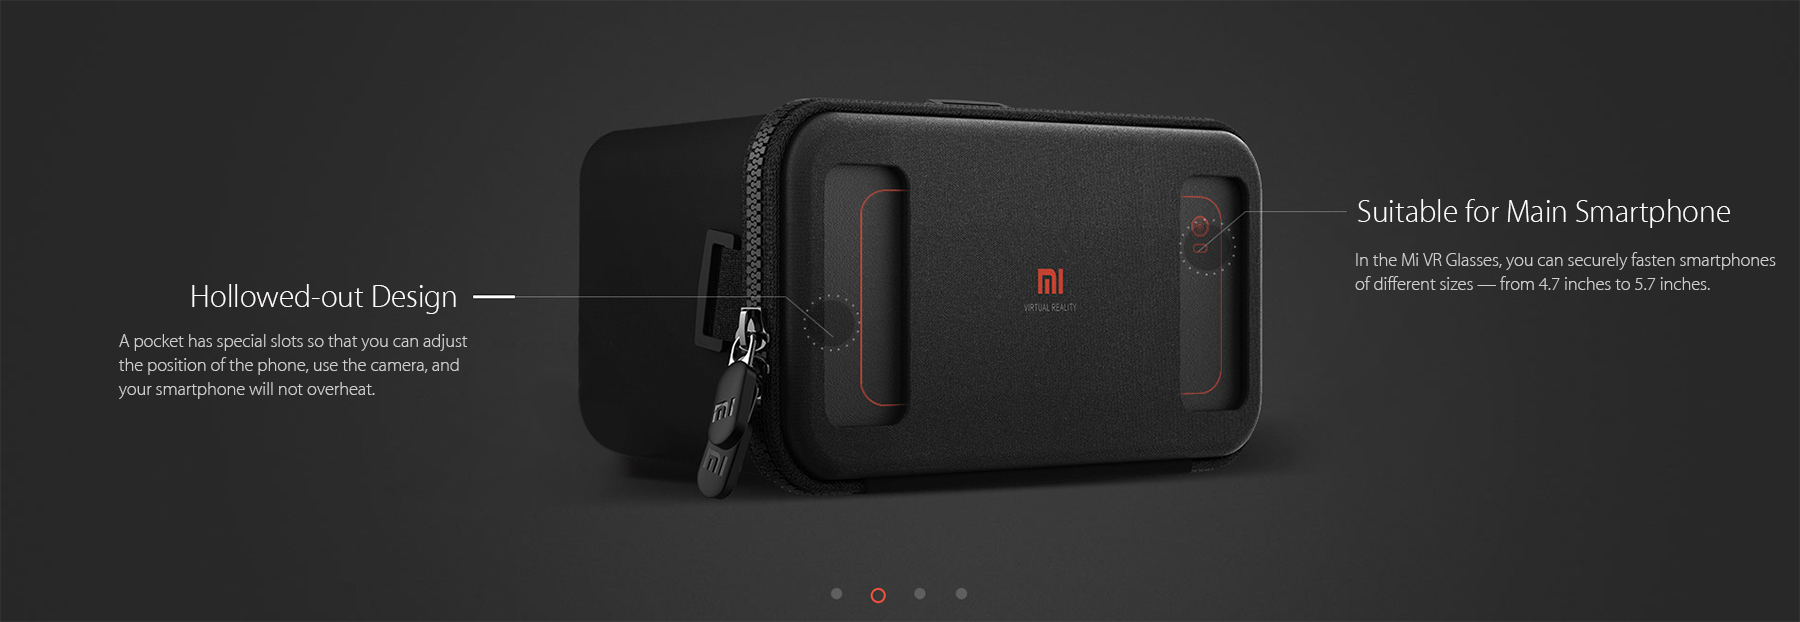 Original Xiaomi VR Virtual Reality 3D Glasses Novelty Design for 4.7 - 5.7 inch Smartphone Immersive Experience- Black